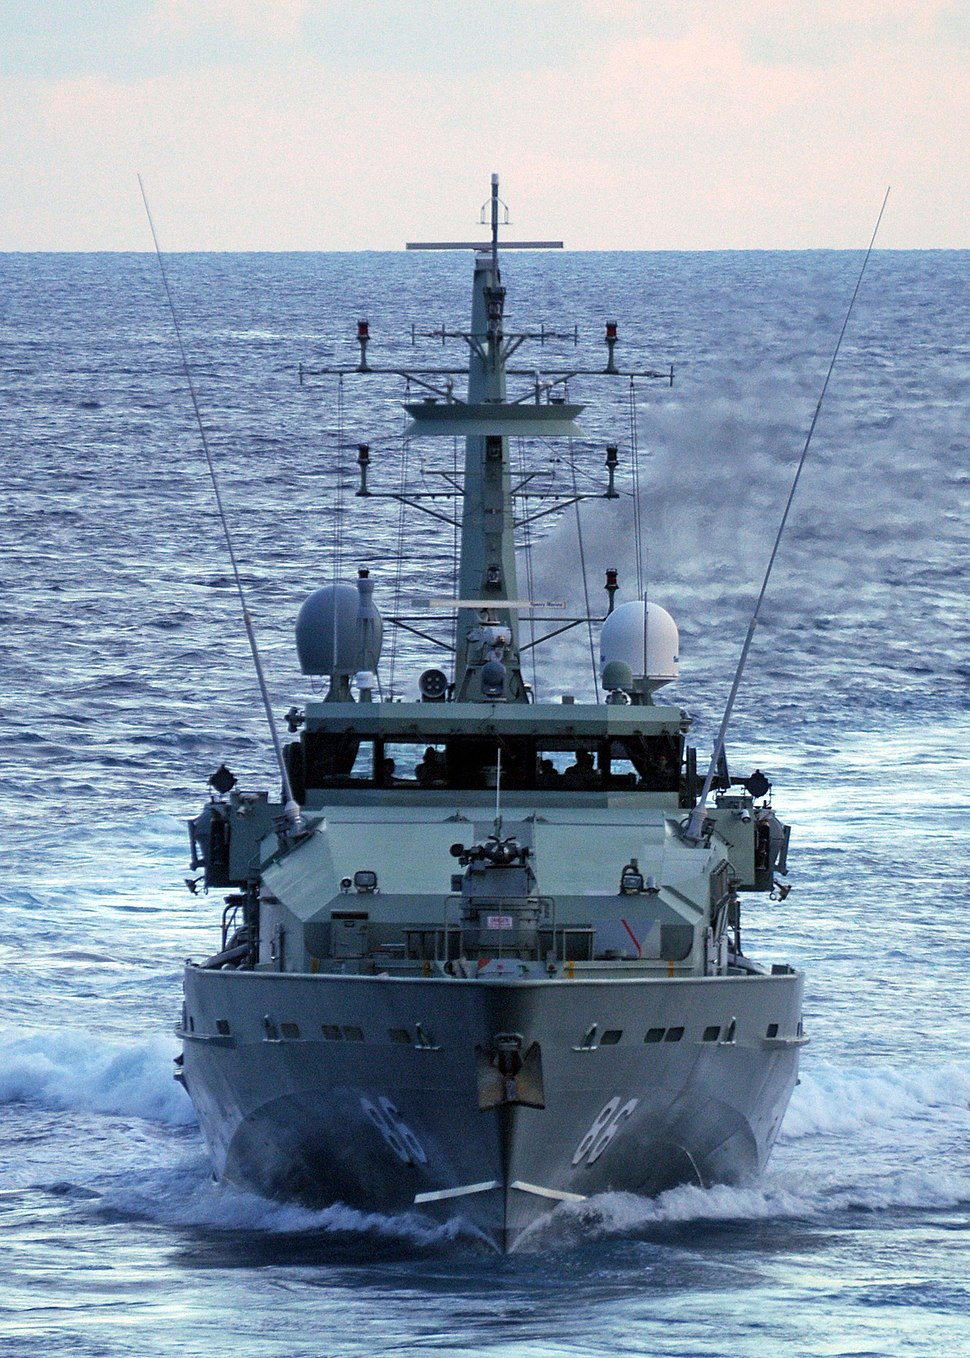 Bow view of HMAS Albany